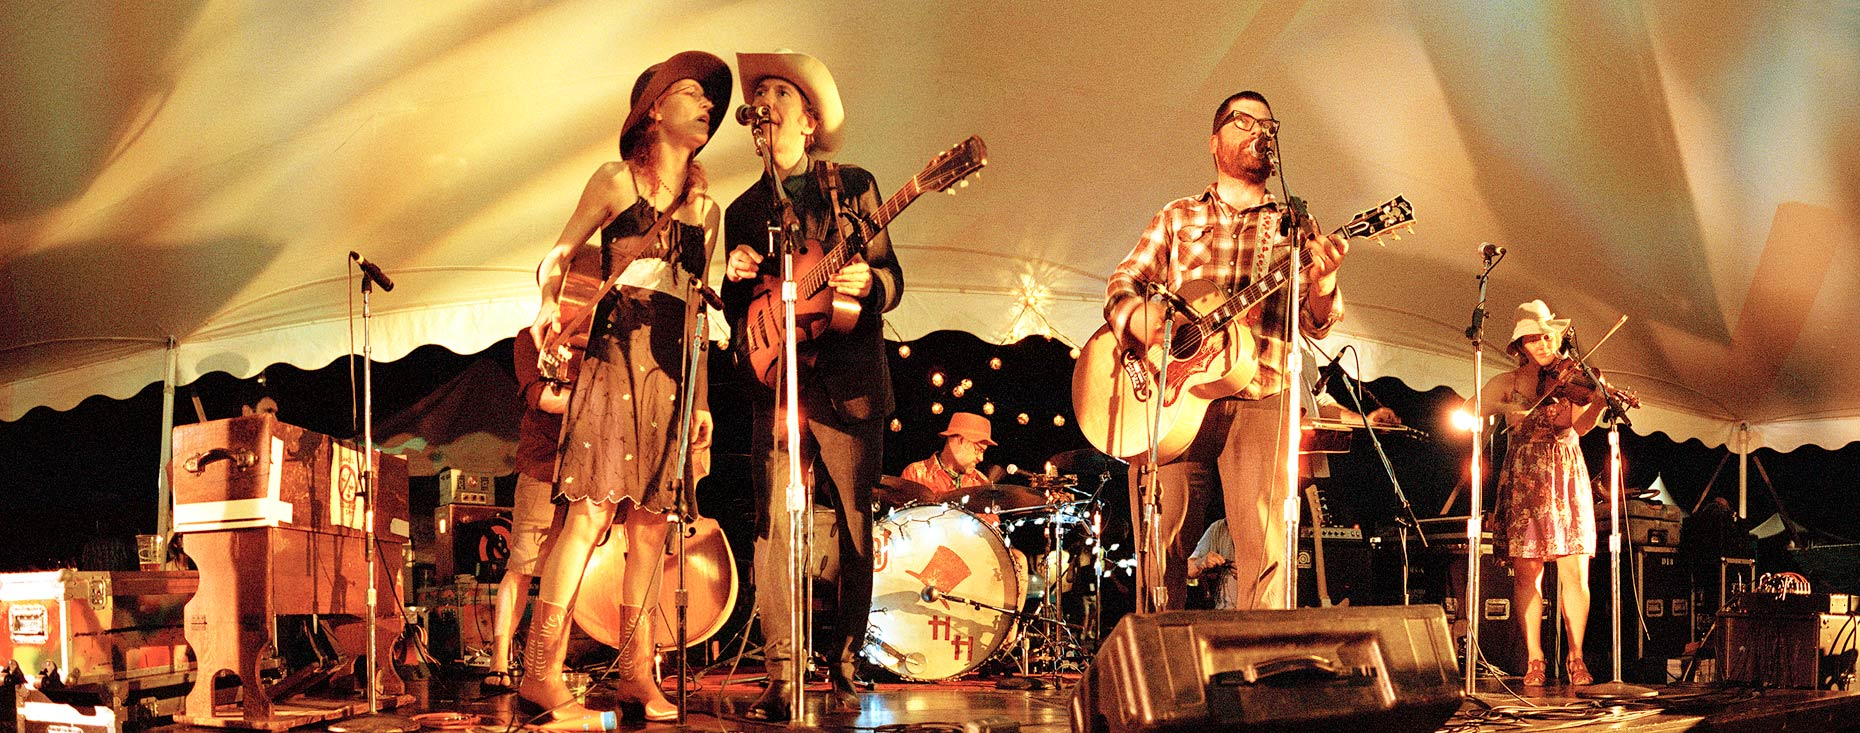 Gillian Welch & David Rawlings w/ The Decemberists